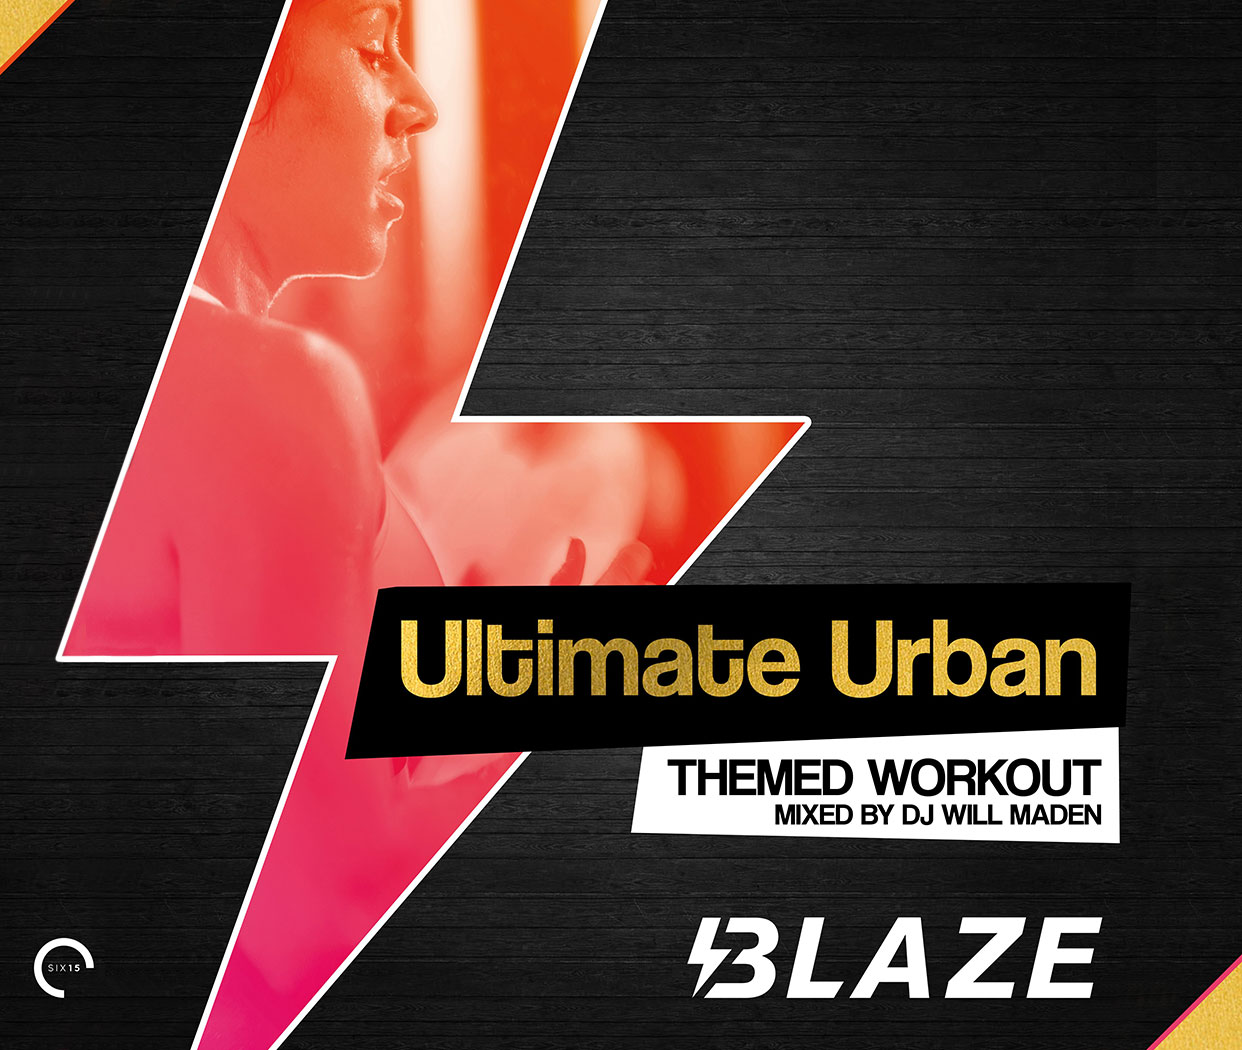 Blaze - Ultimate Urban!